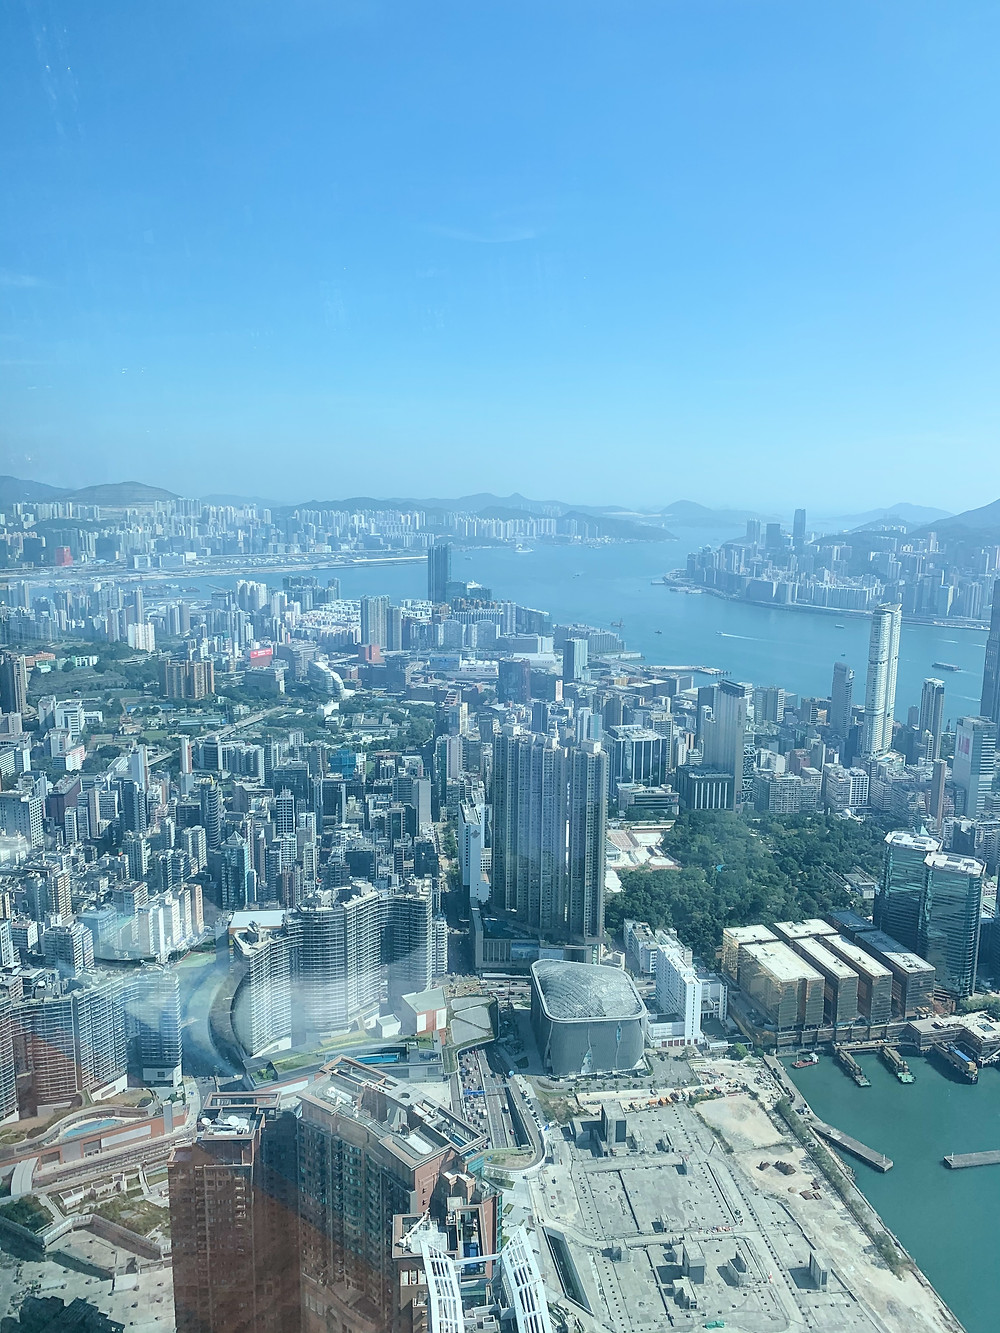 View from Tosca restaurant, Ritz-Carlton Hotel, Hong Kong